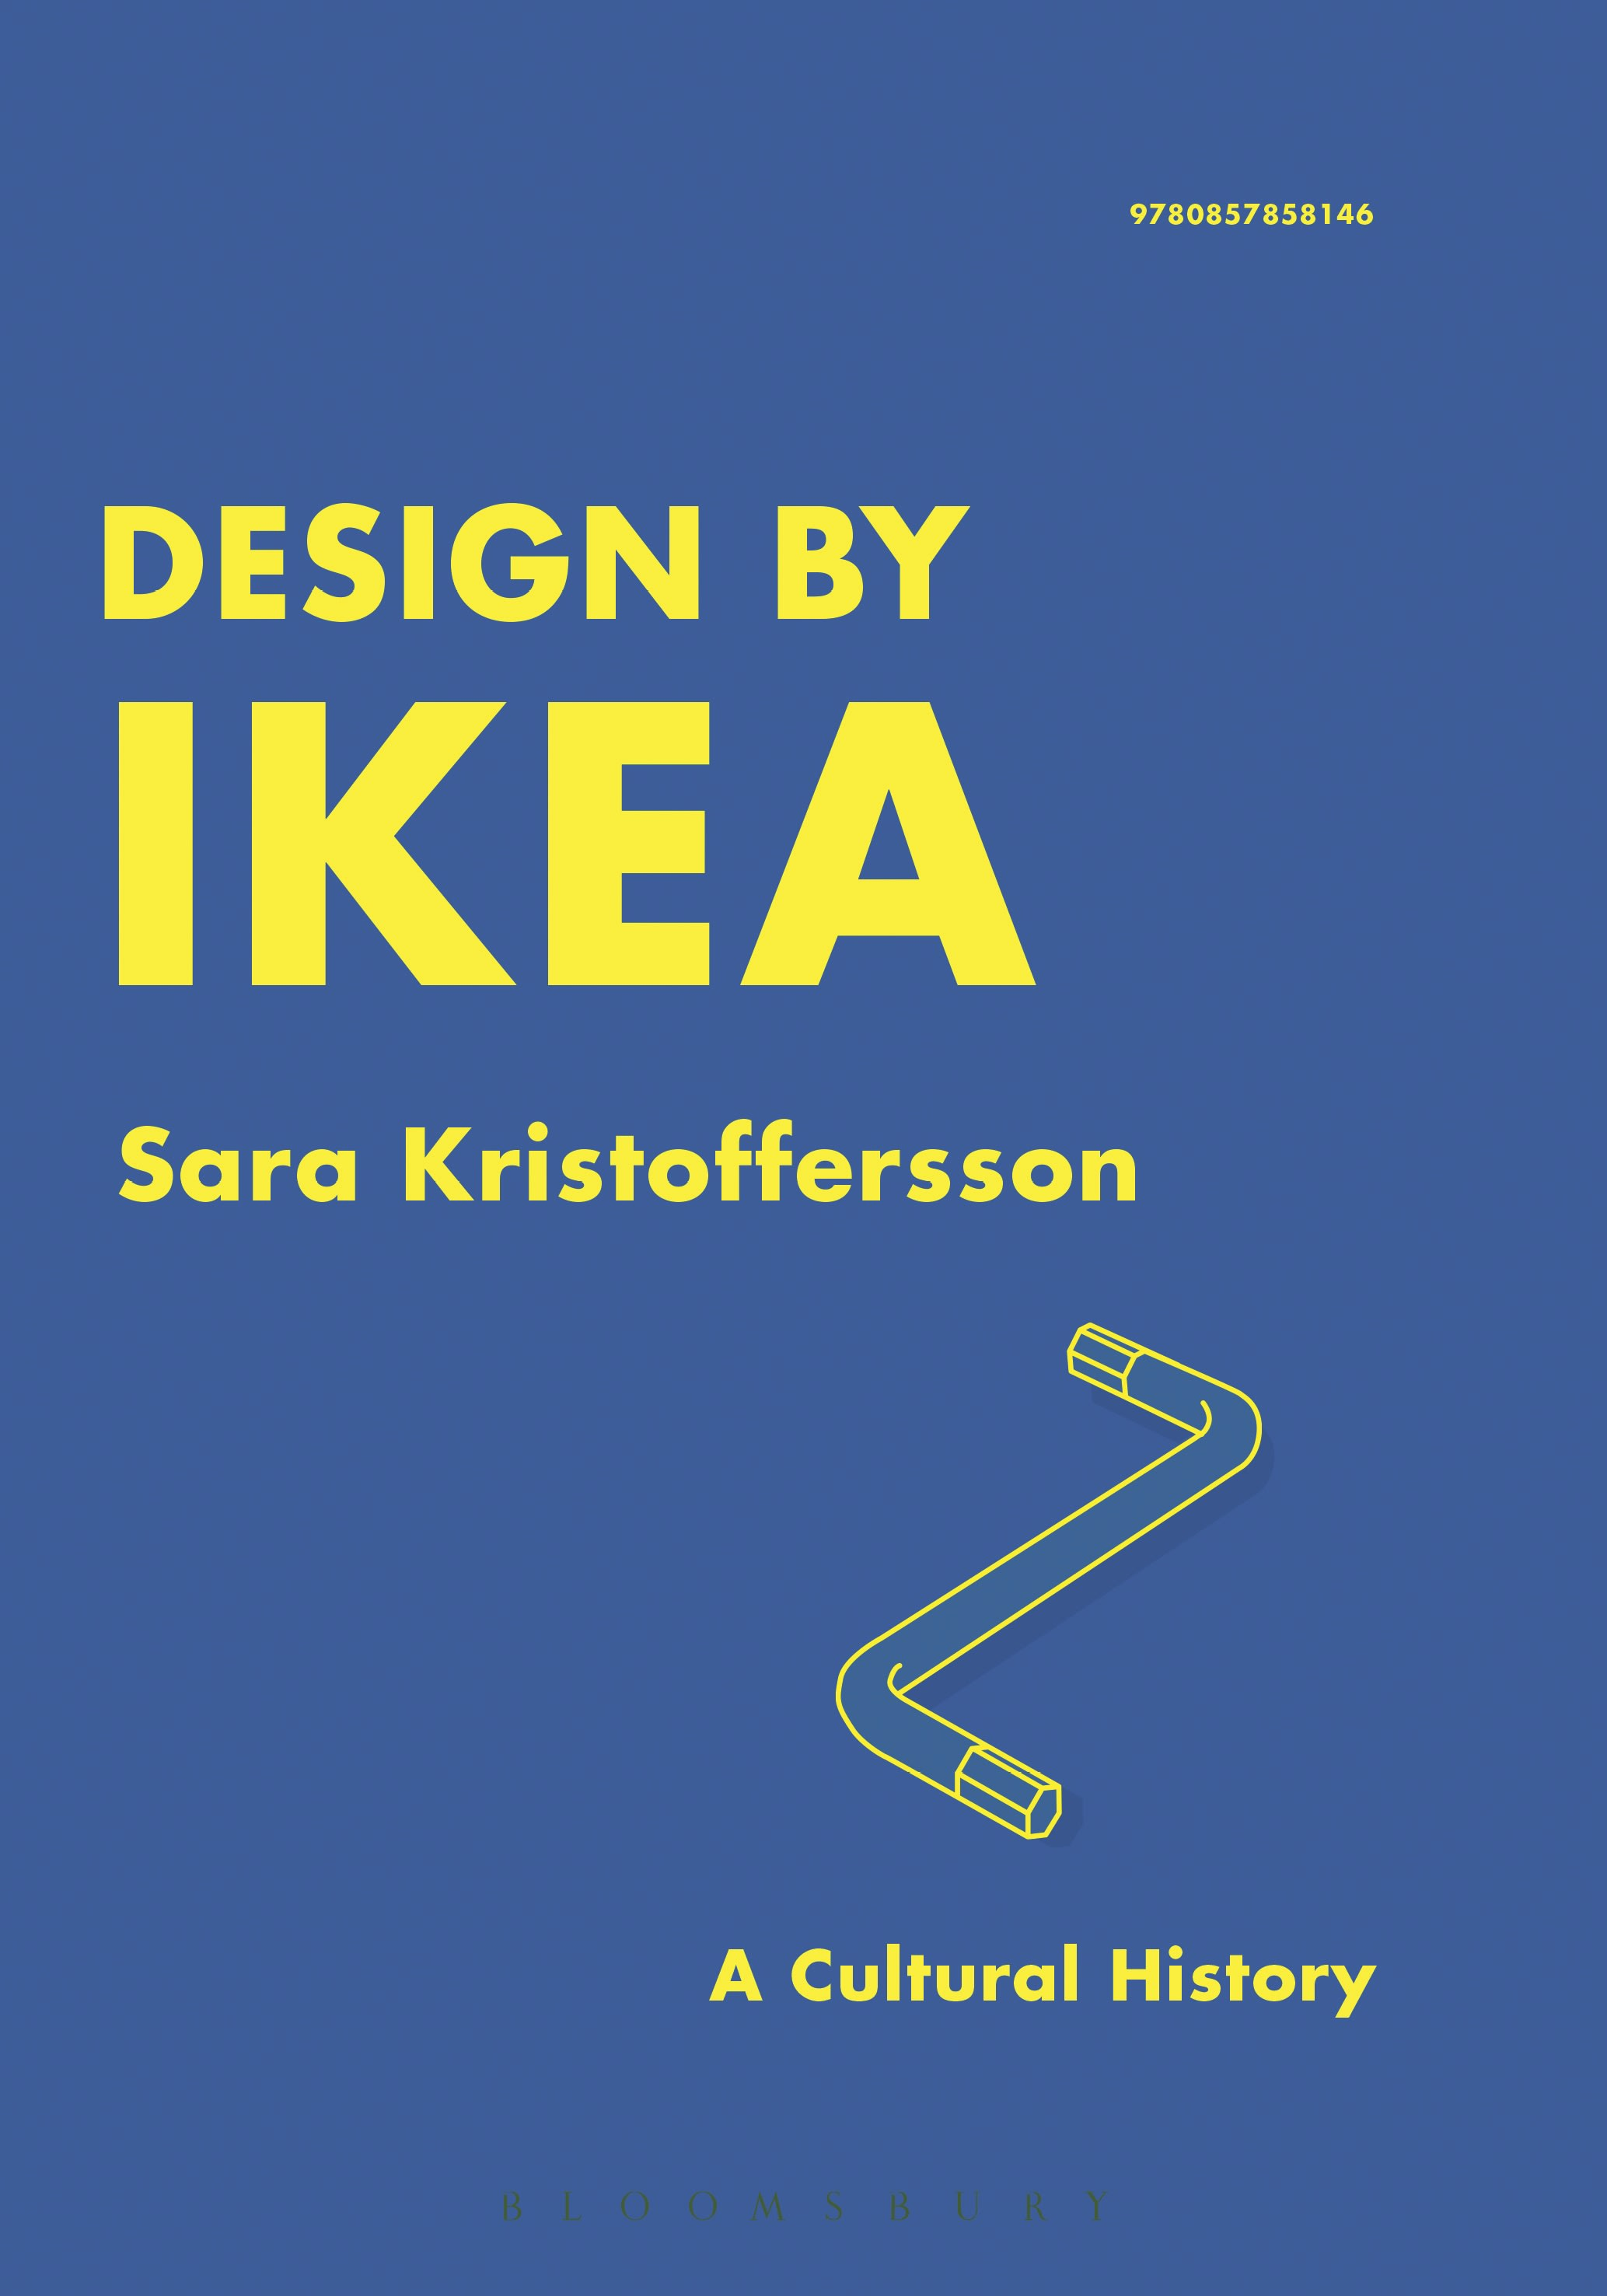 The cover of Design By Ikea: A Cultural History.